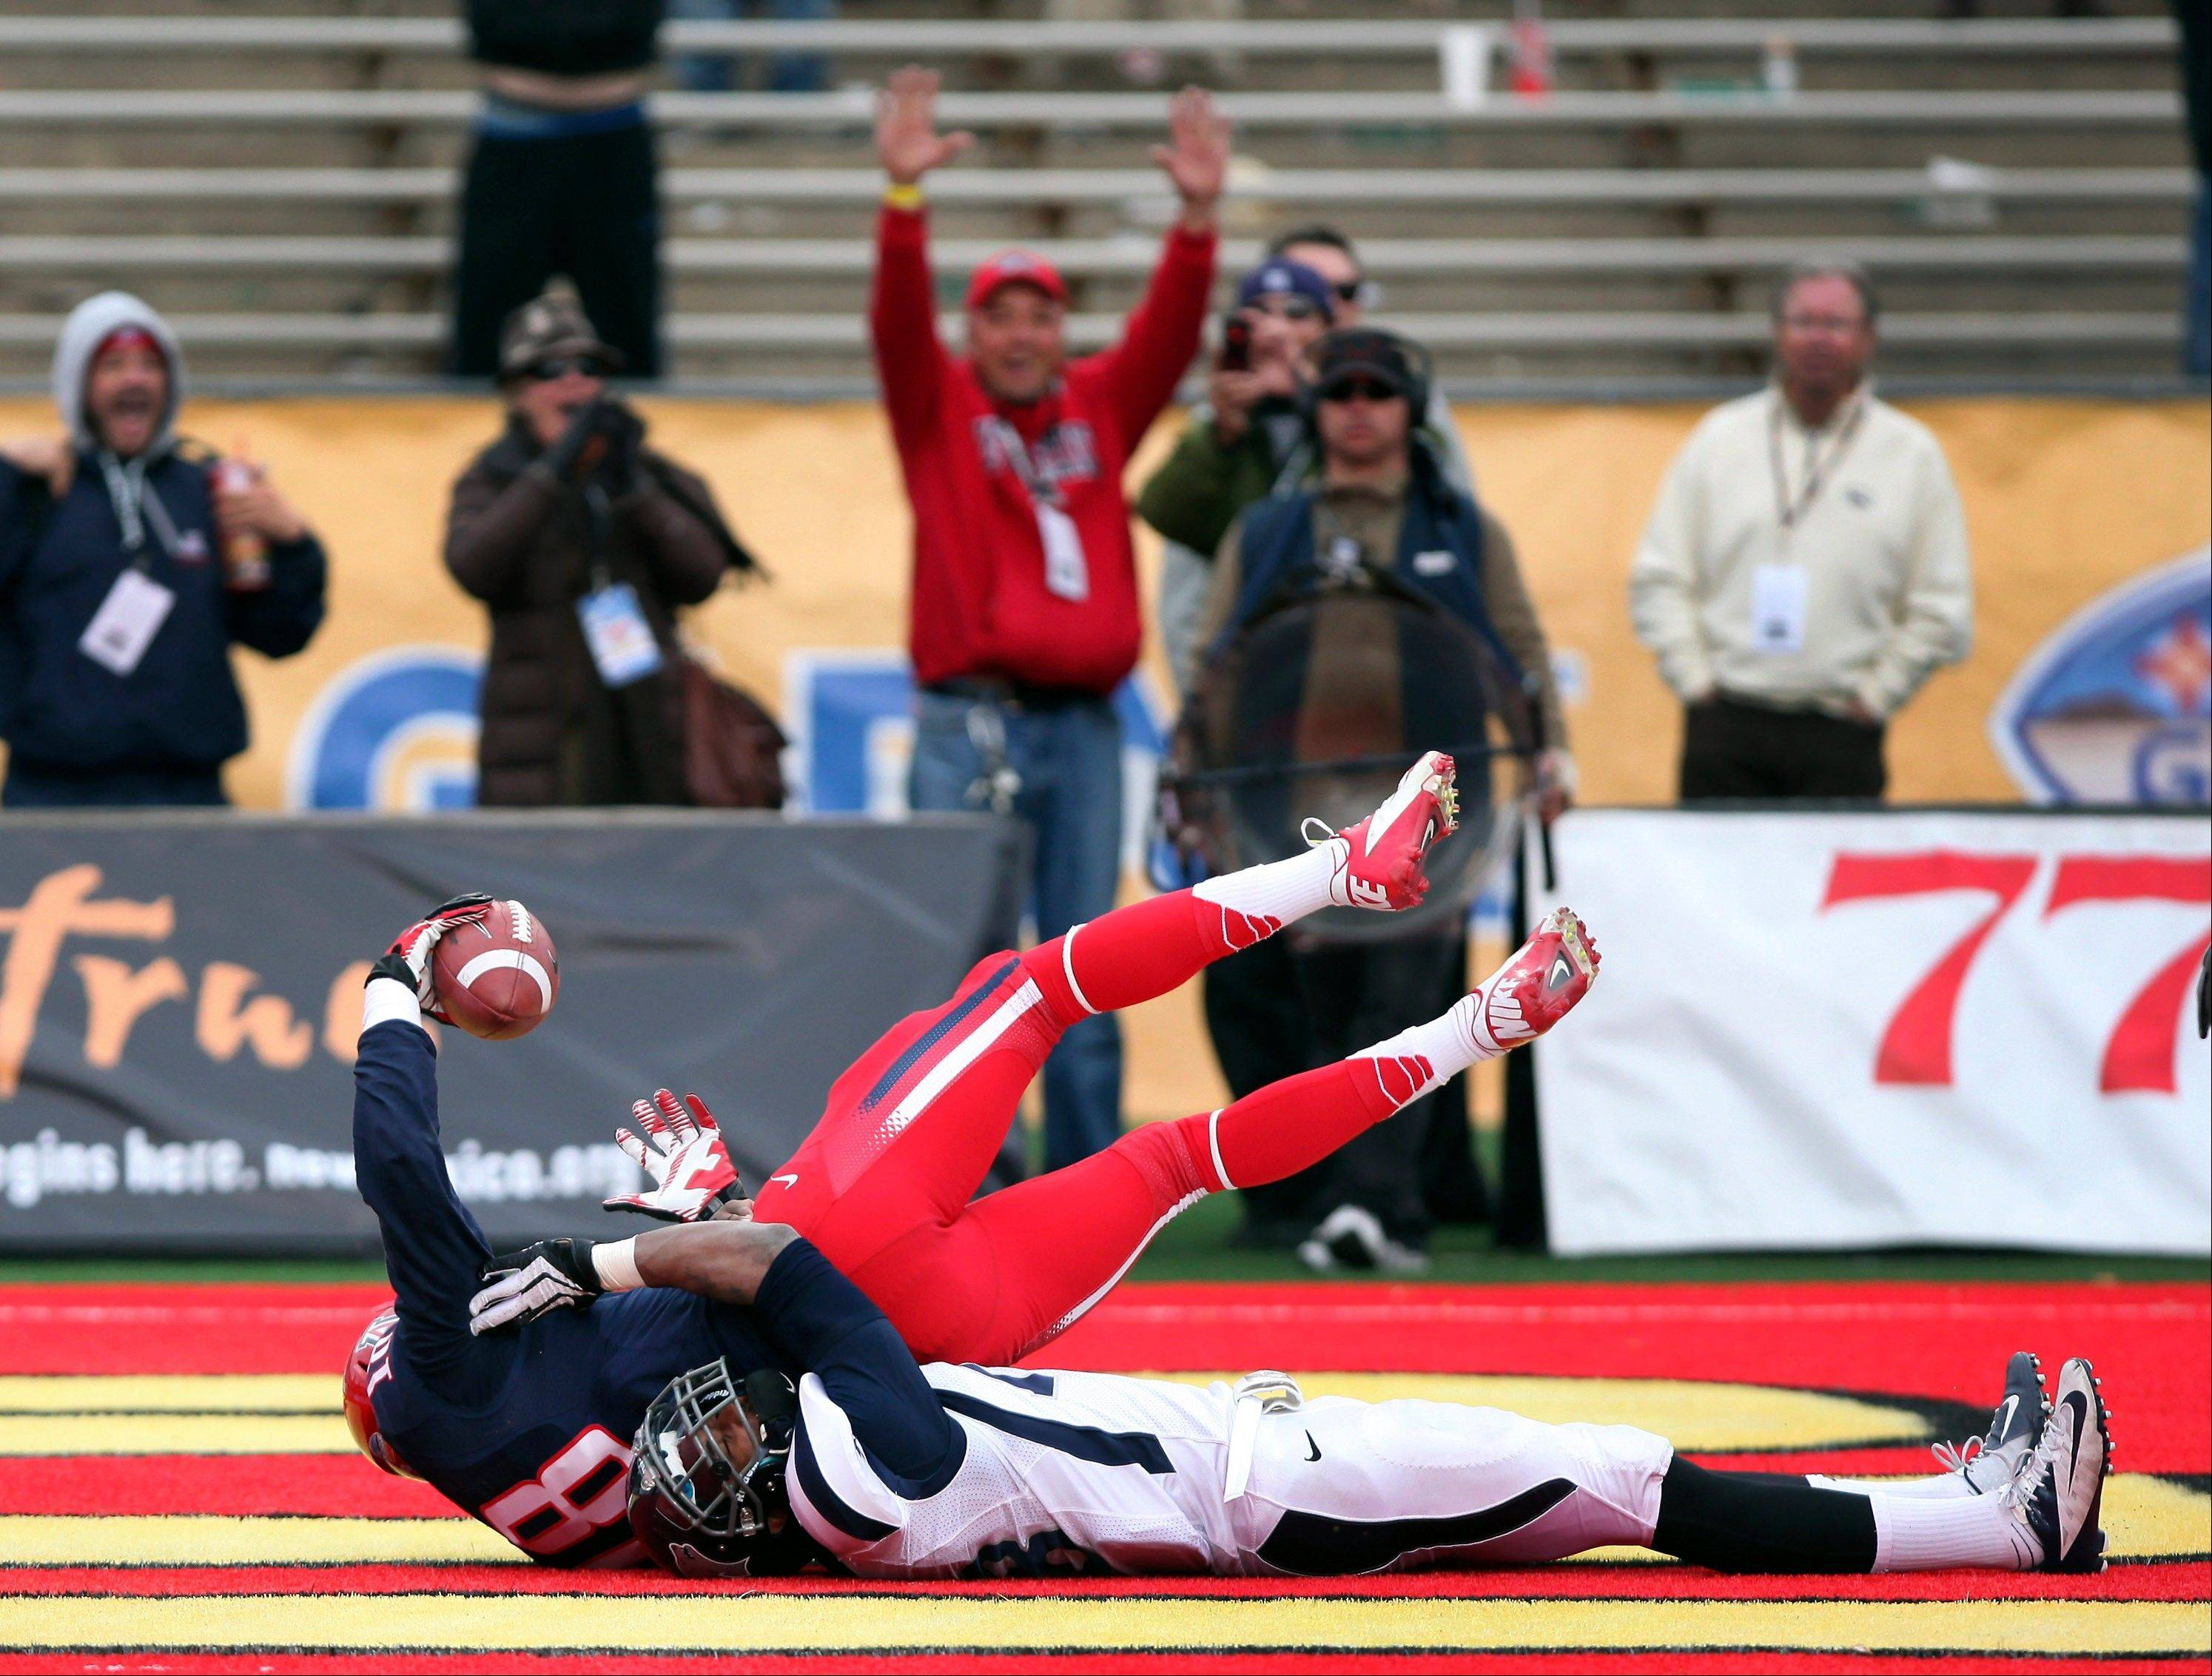 Arizona's Terrance Miller comes down with a touchdown catch in the end zone in front of Nevada's Bryson Keeton to tie the game in the closing seconds of the fourth quarter of New Mexico Bowl Saturday in Albuquerque, N.M. Arizona won 49-48.